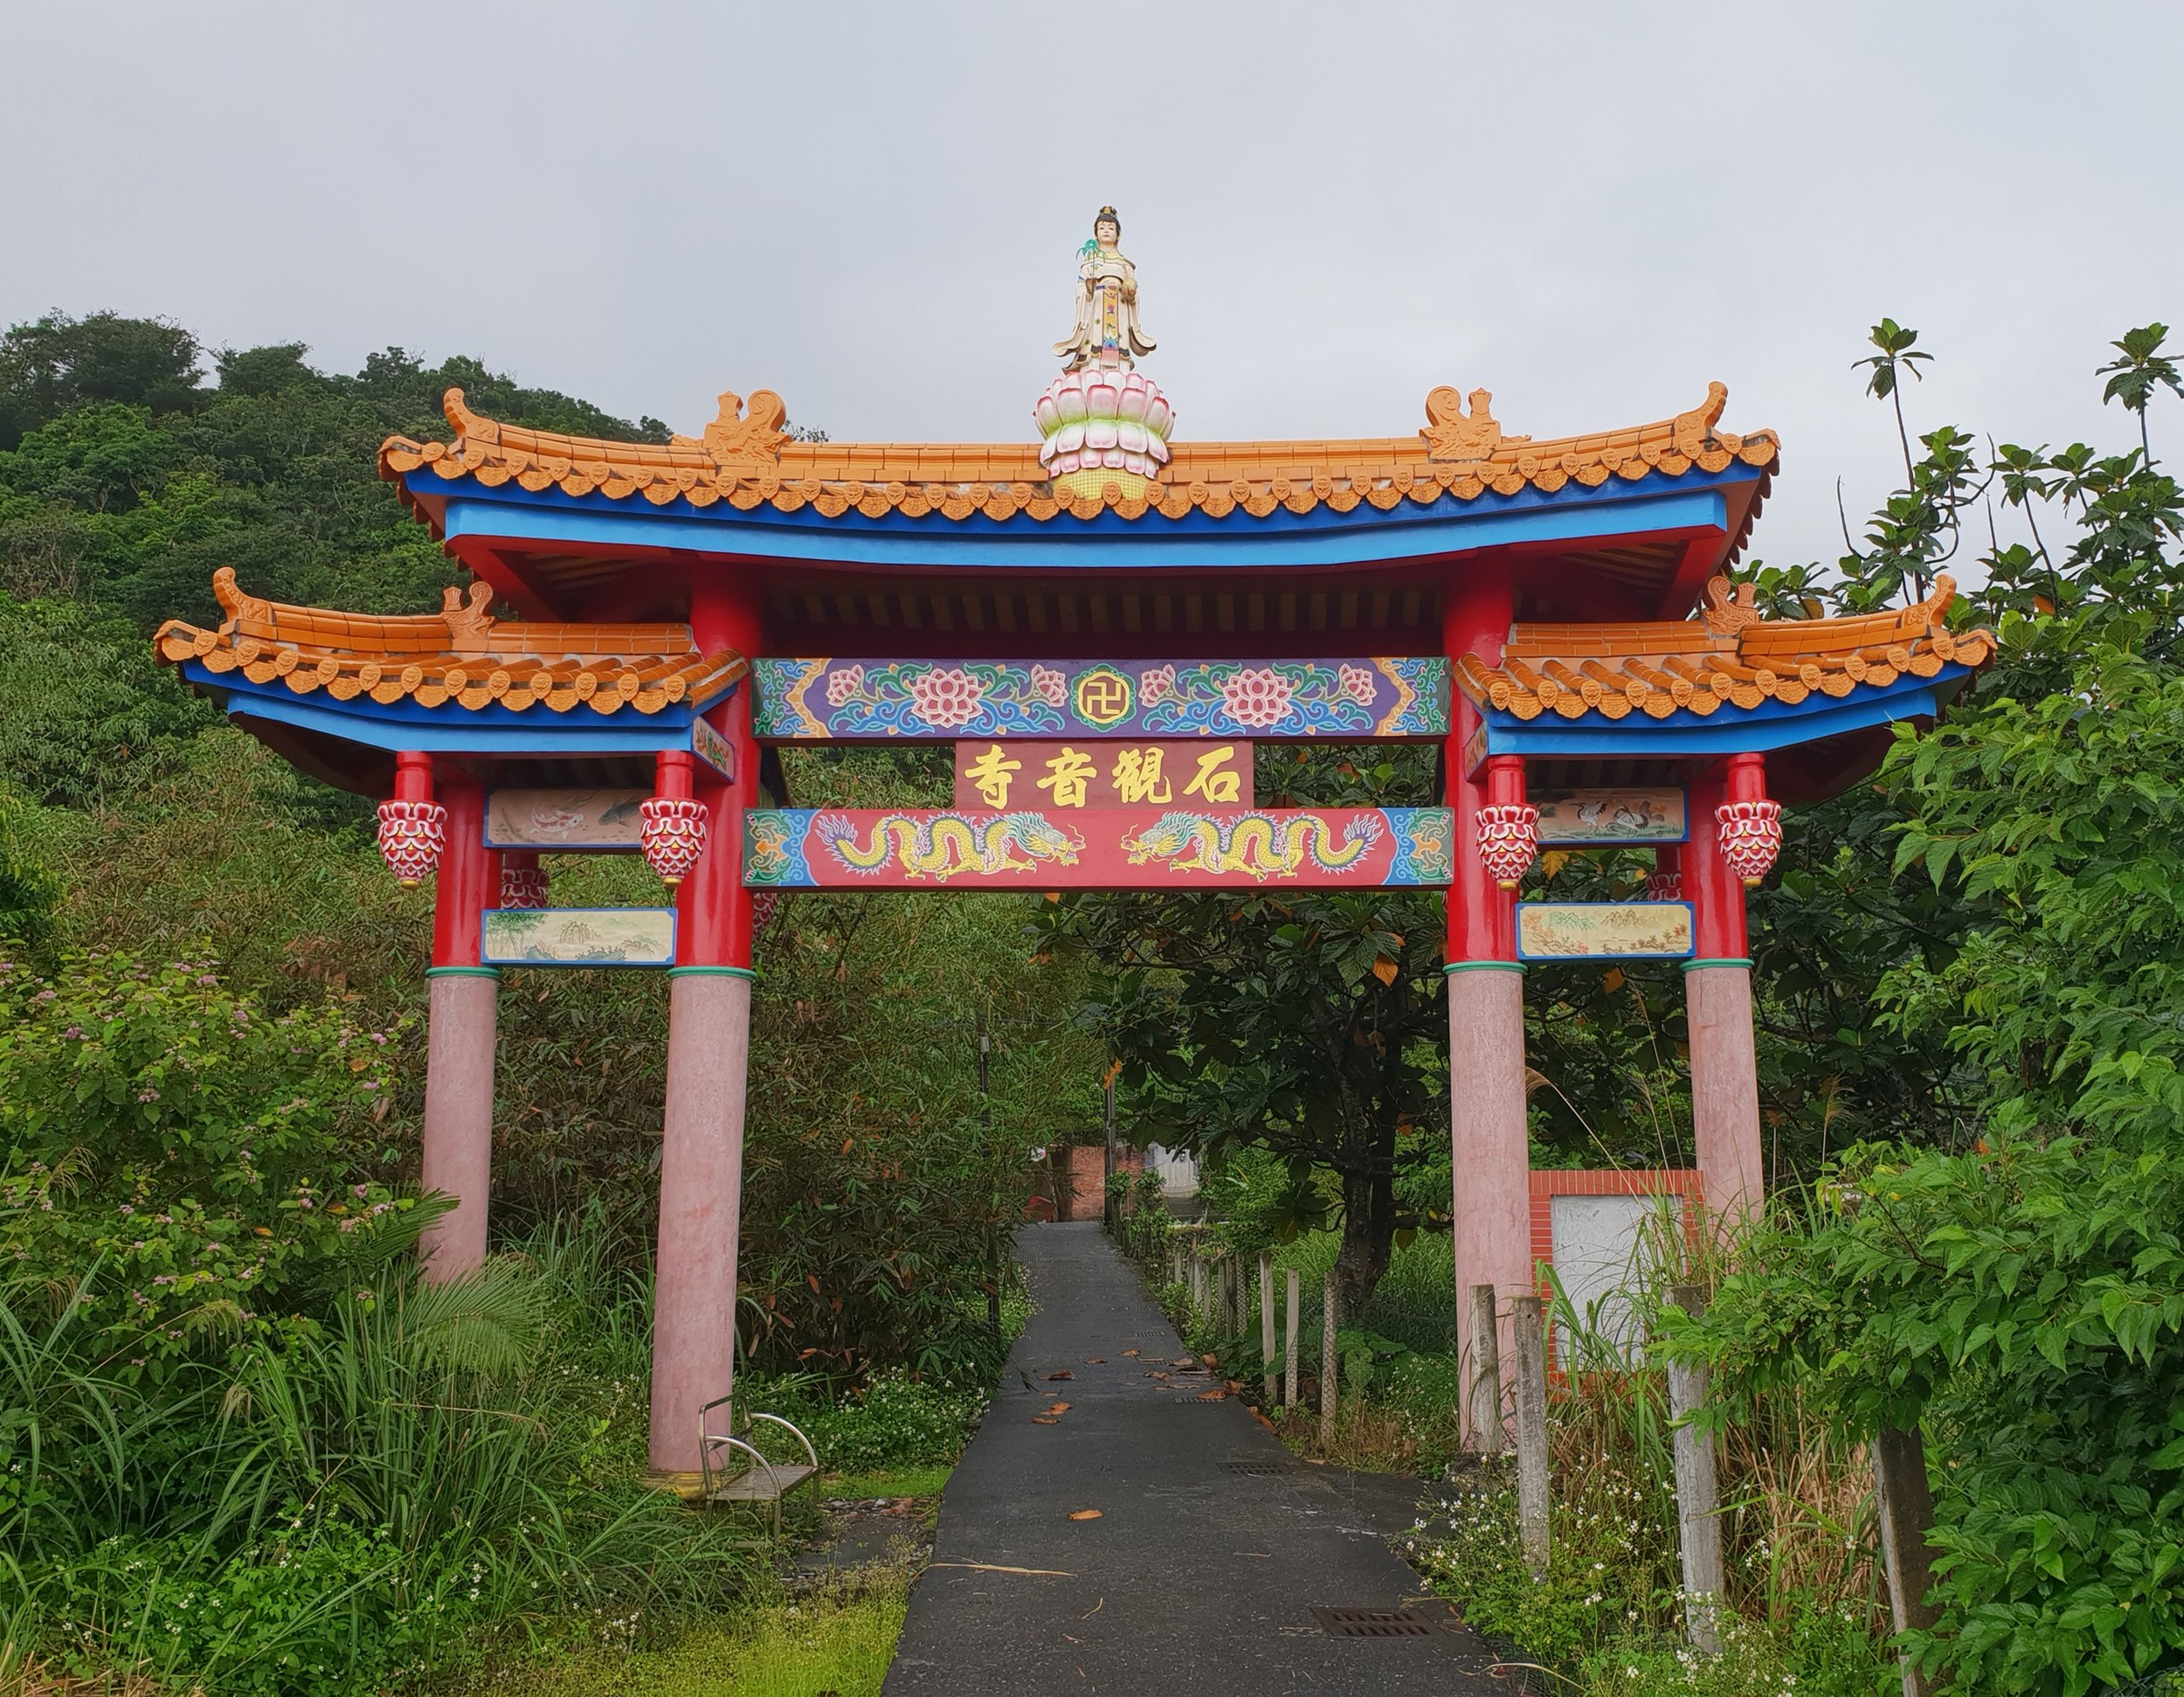 Guanyin welcomes you weary traveller ... with ... lots of steps!